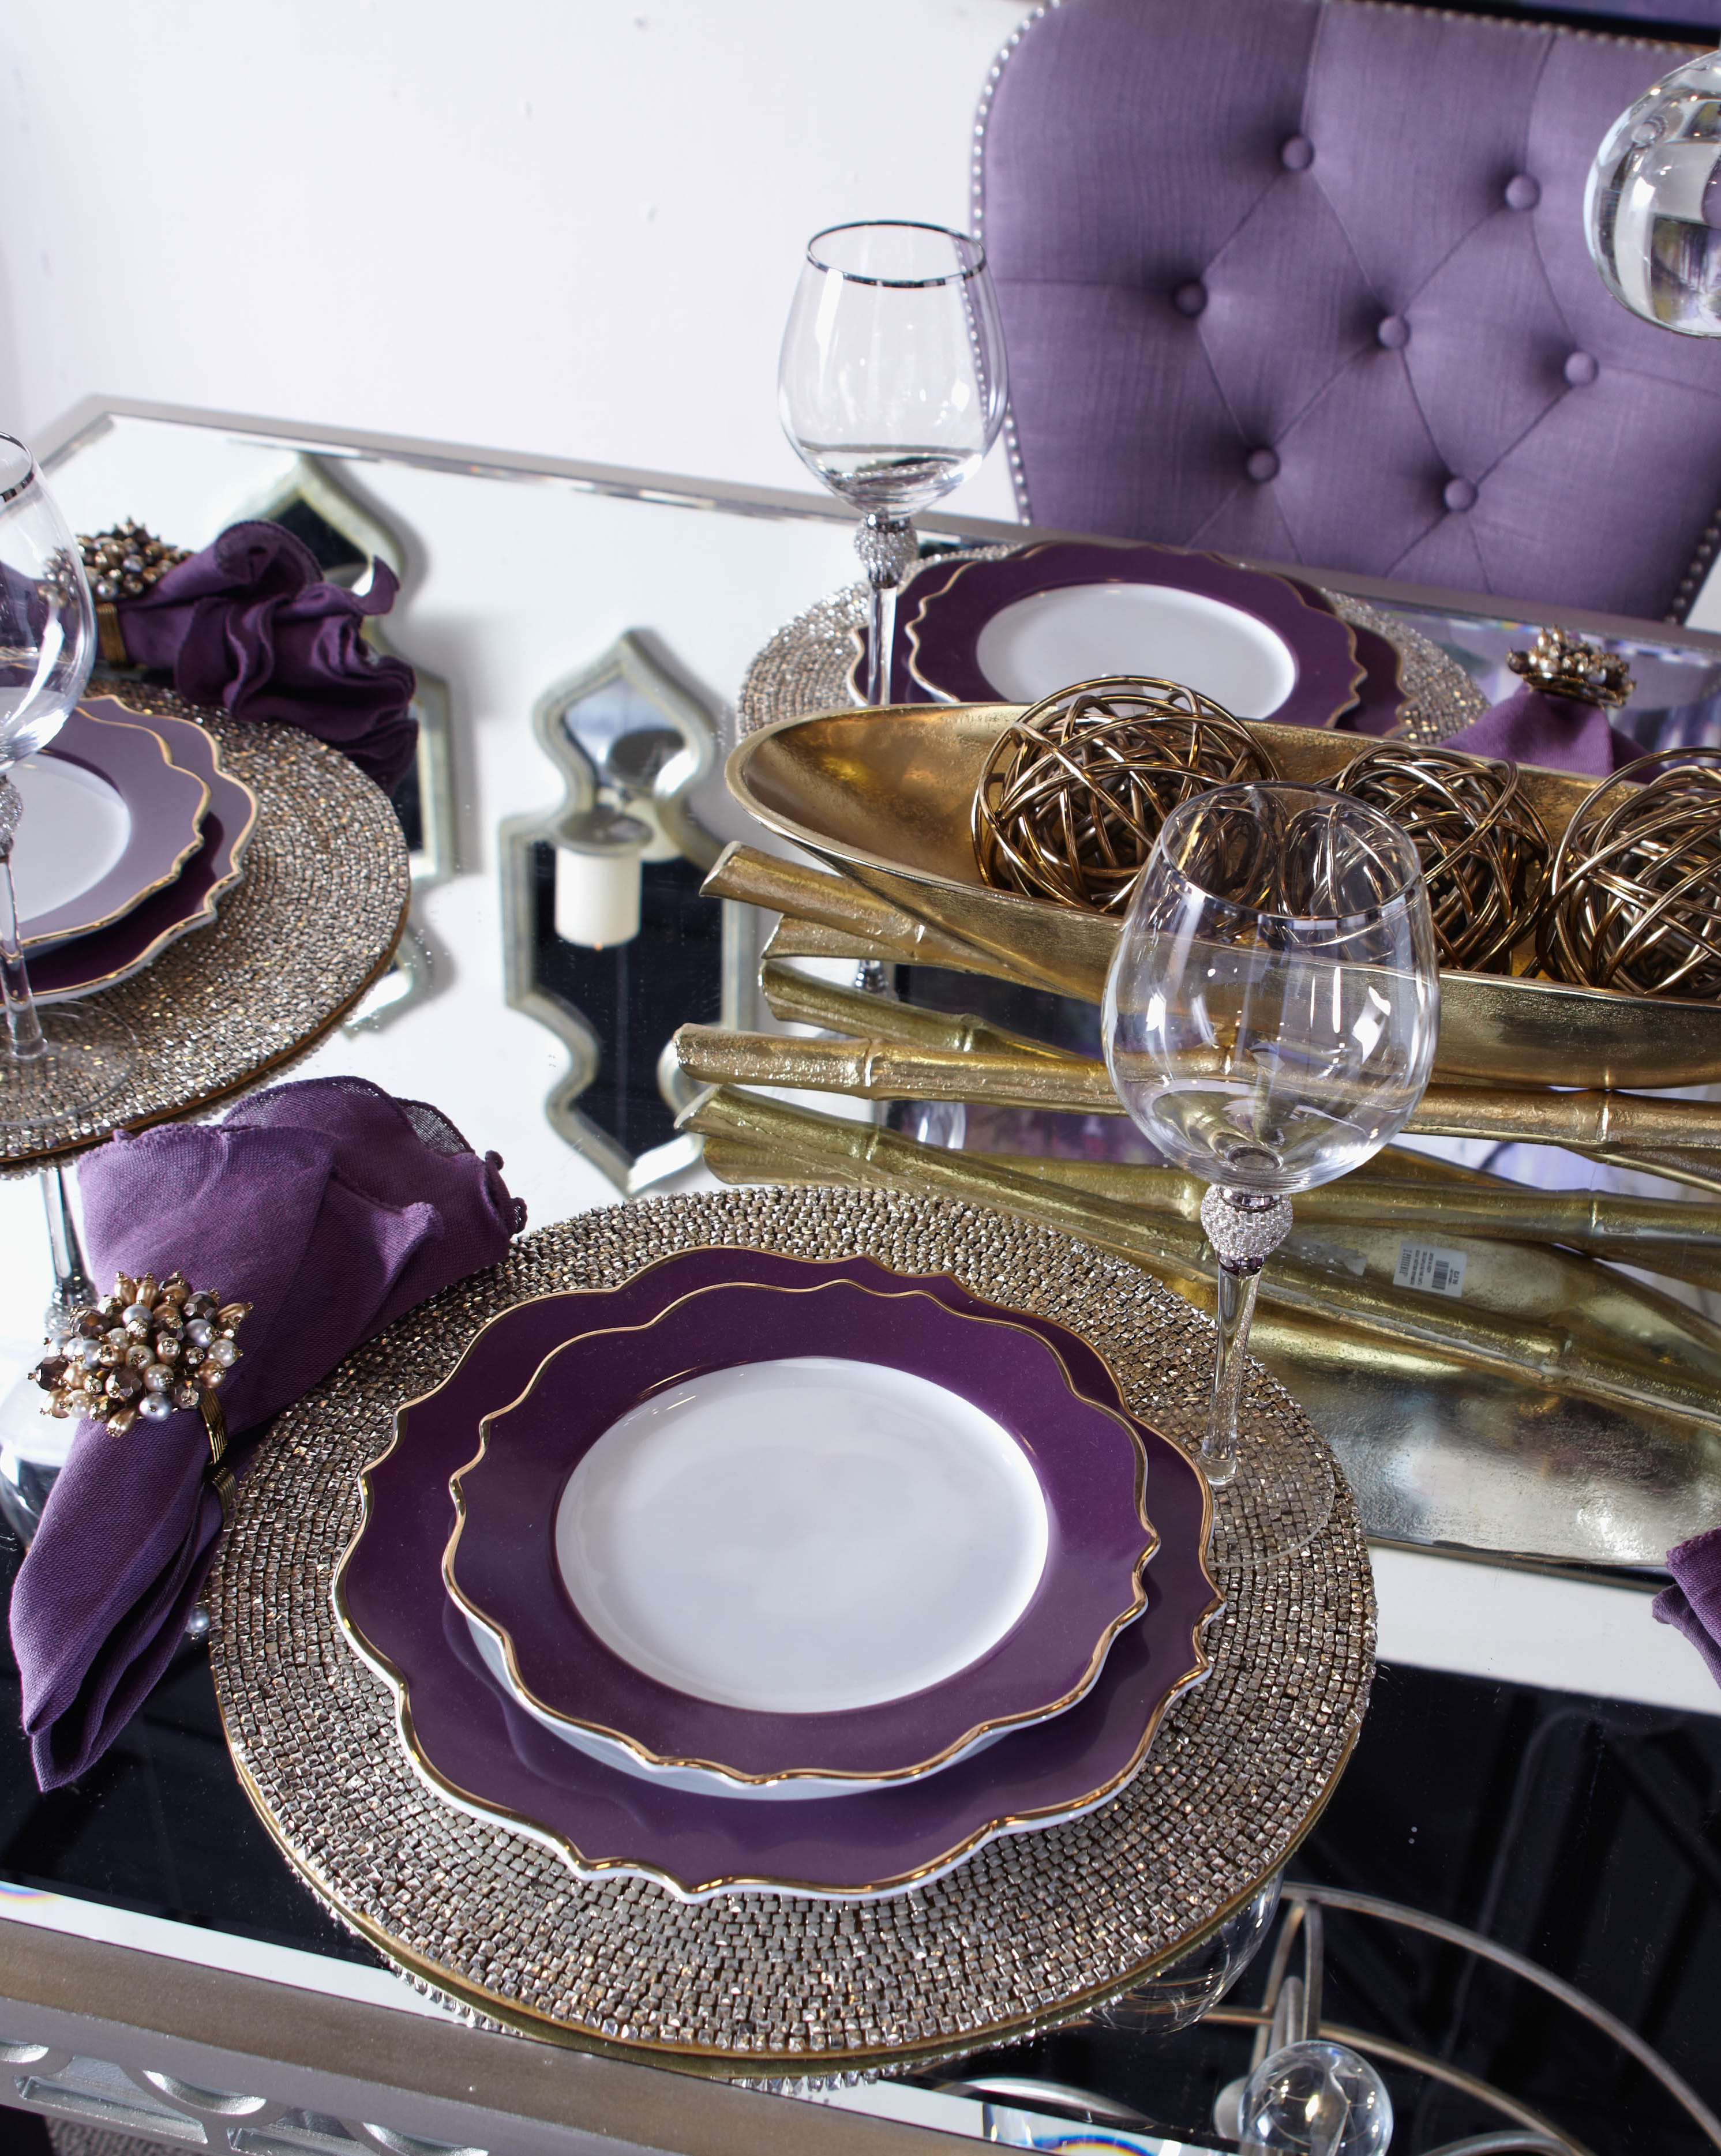 Stylish Home Decor Chic Furniture At Affordable Prices Dining Room Table Decor Purple Dining Room Dining Table Decor